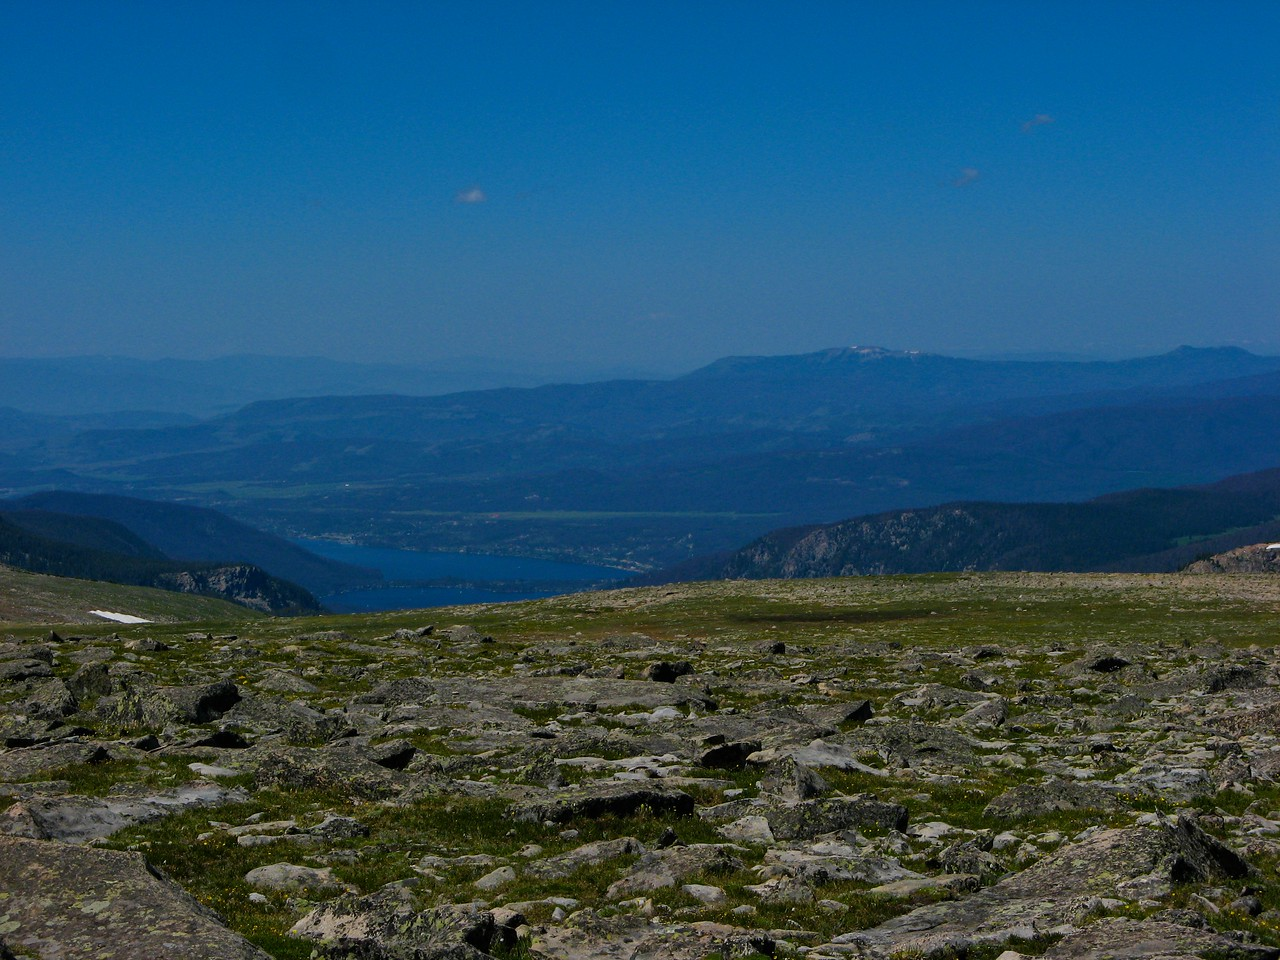 You can see Grand Lake from the top of Flattop.